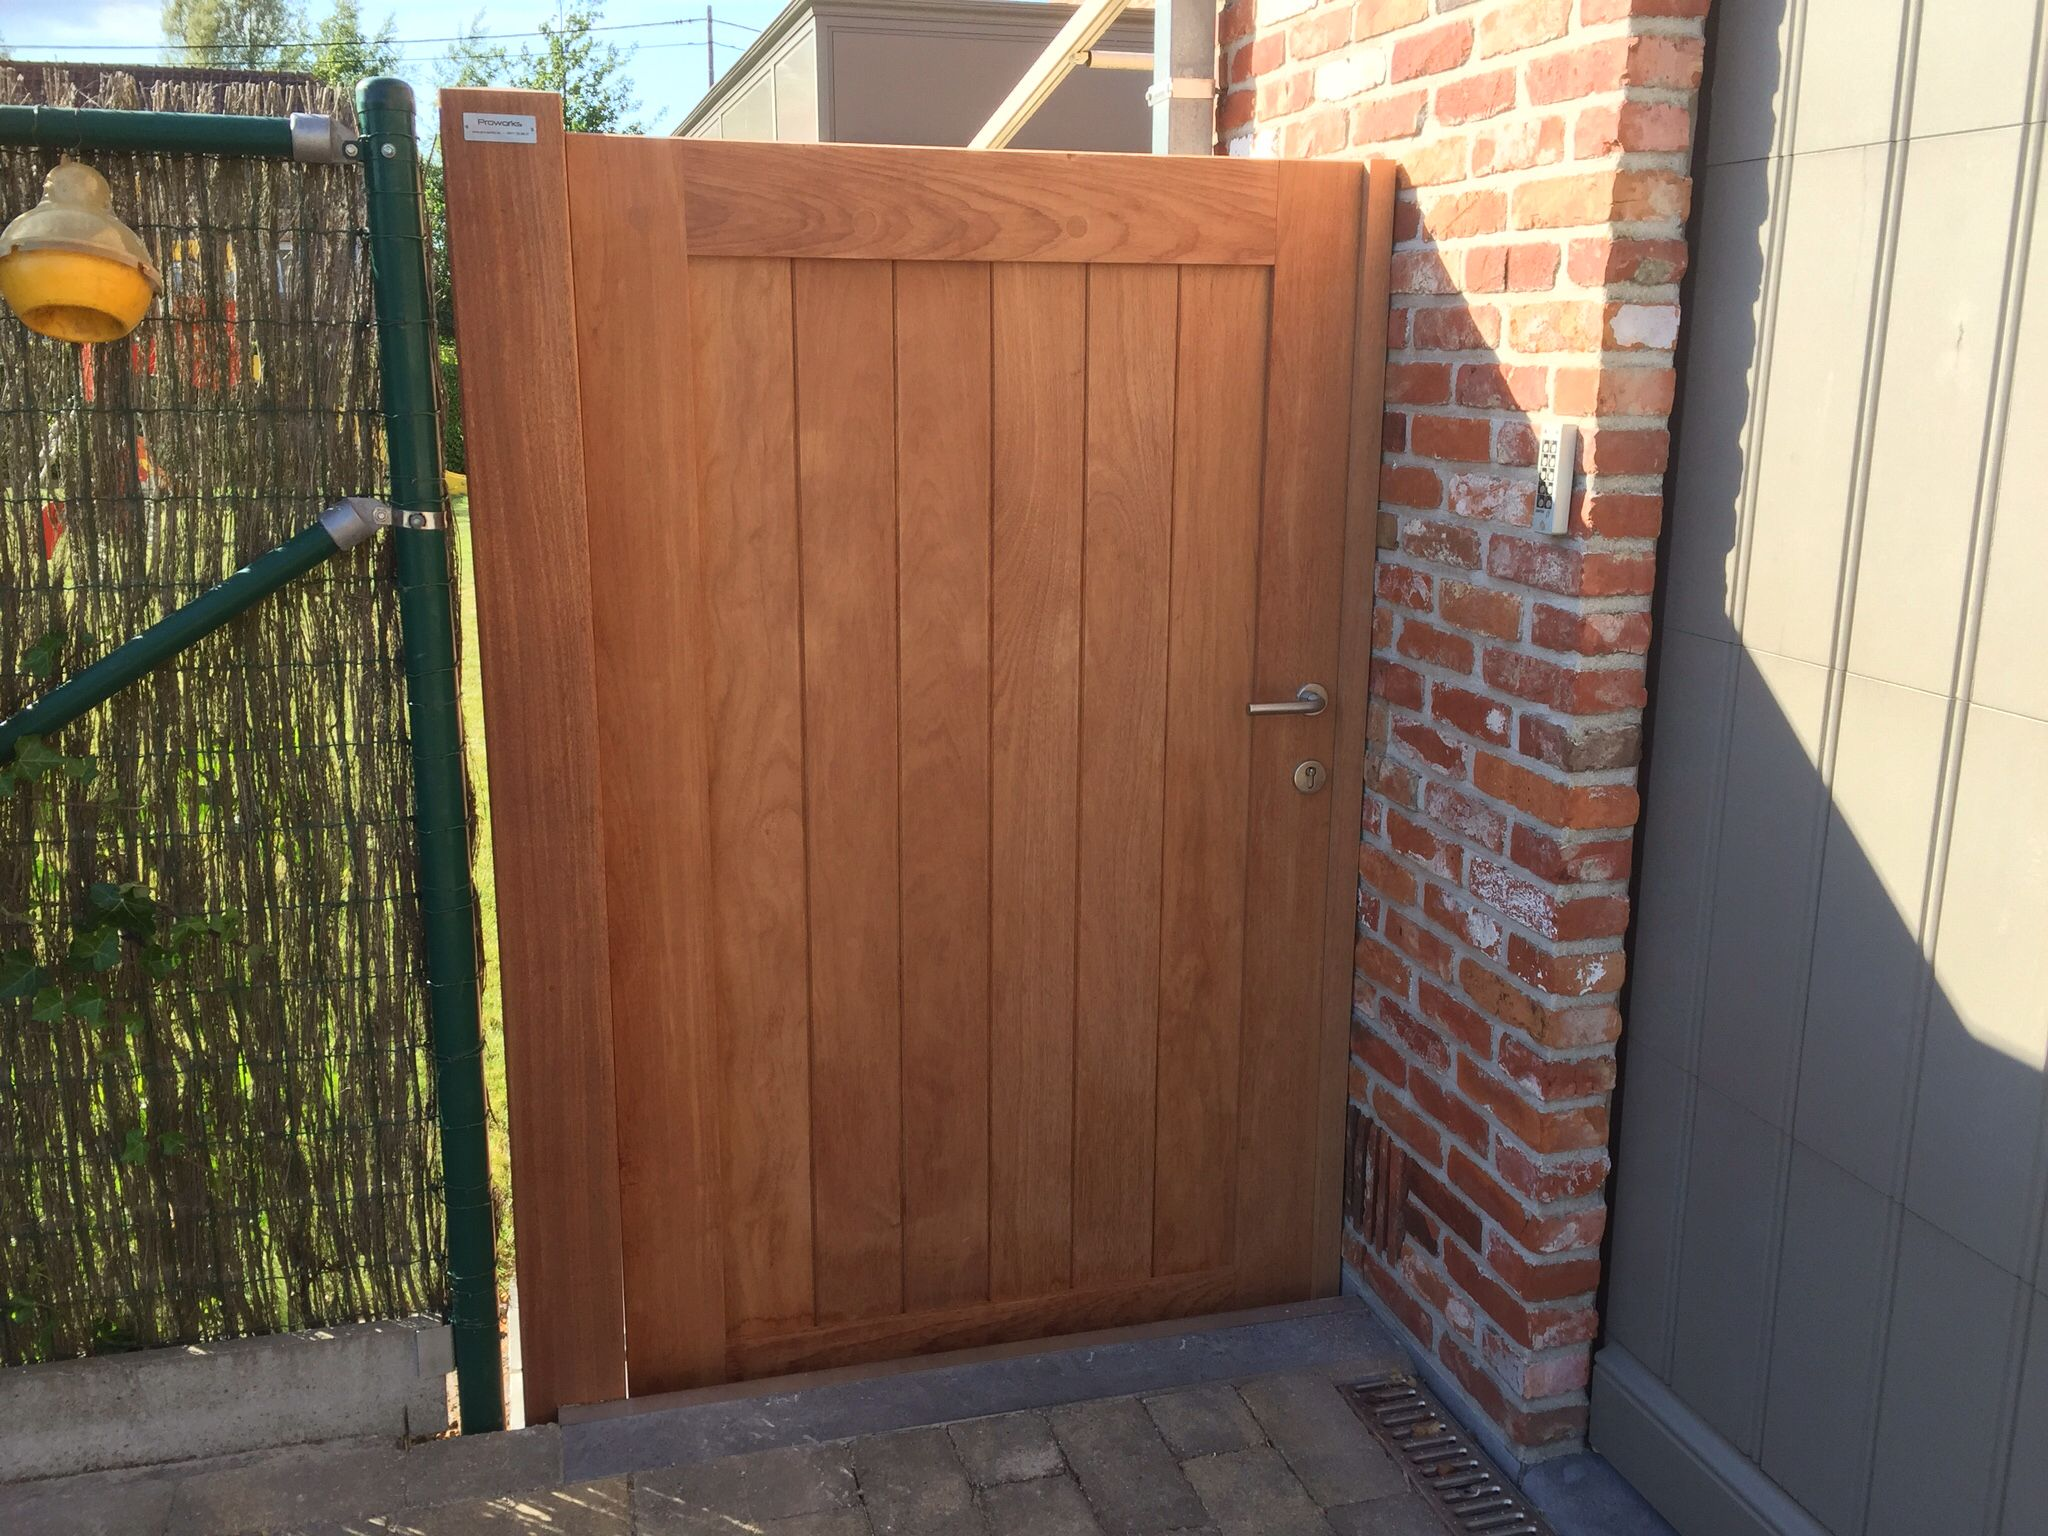 Tuindeur Stalen Frame Houten Tuinpoort By Pro Works Be Tuin In 2019 Wooden Gates